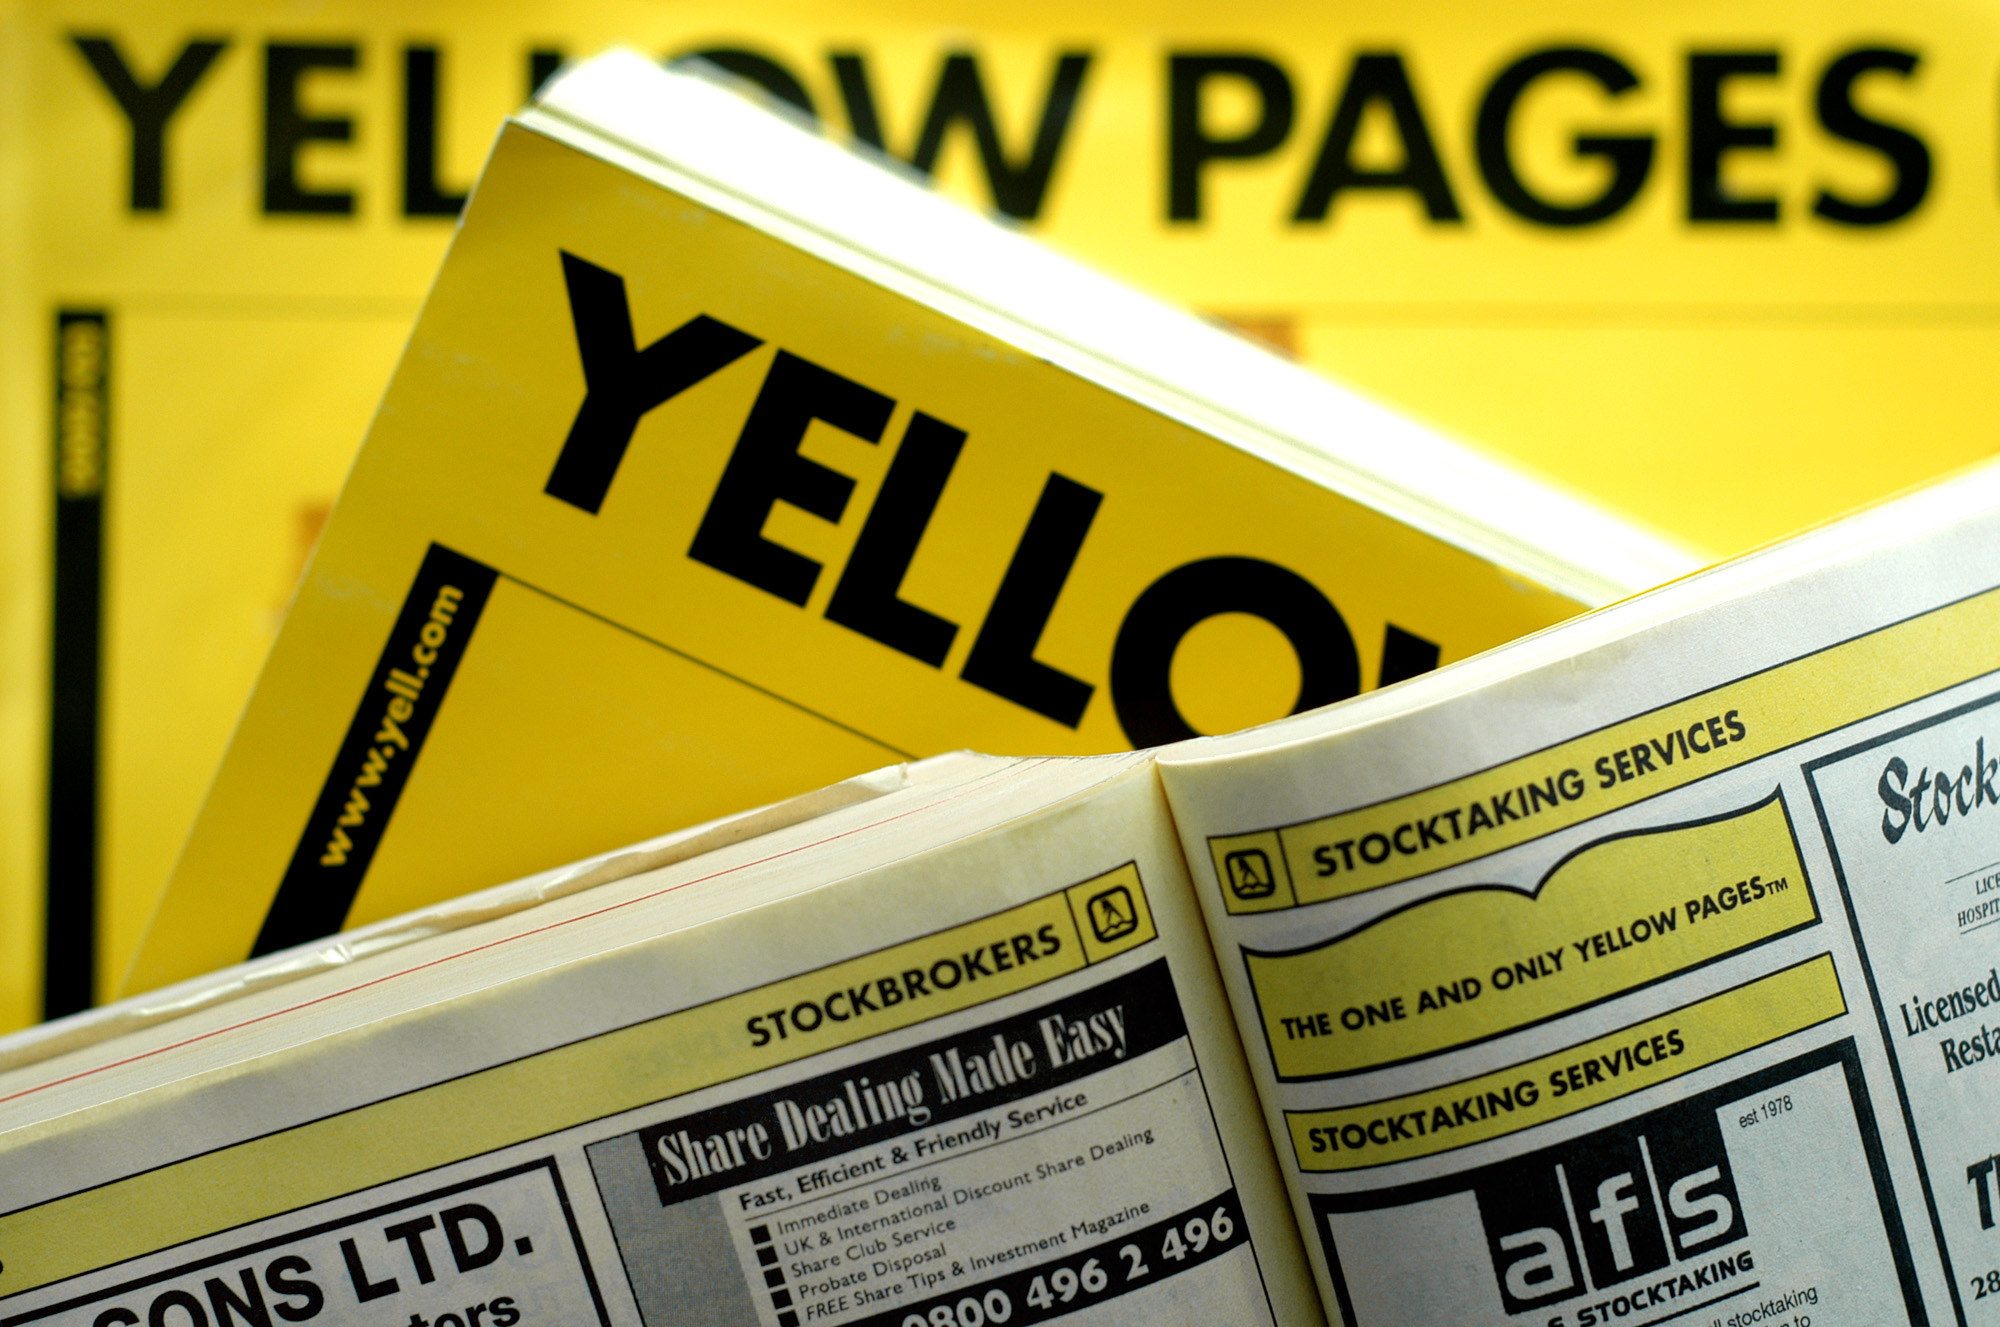 Yellow Pages telephone directories